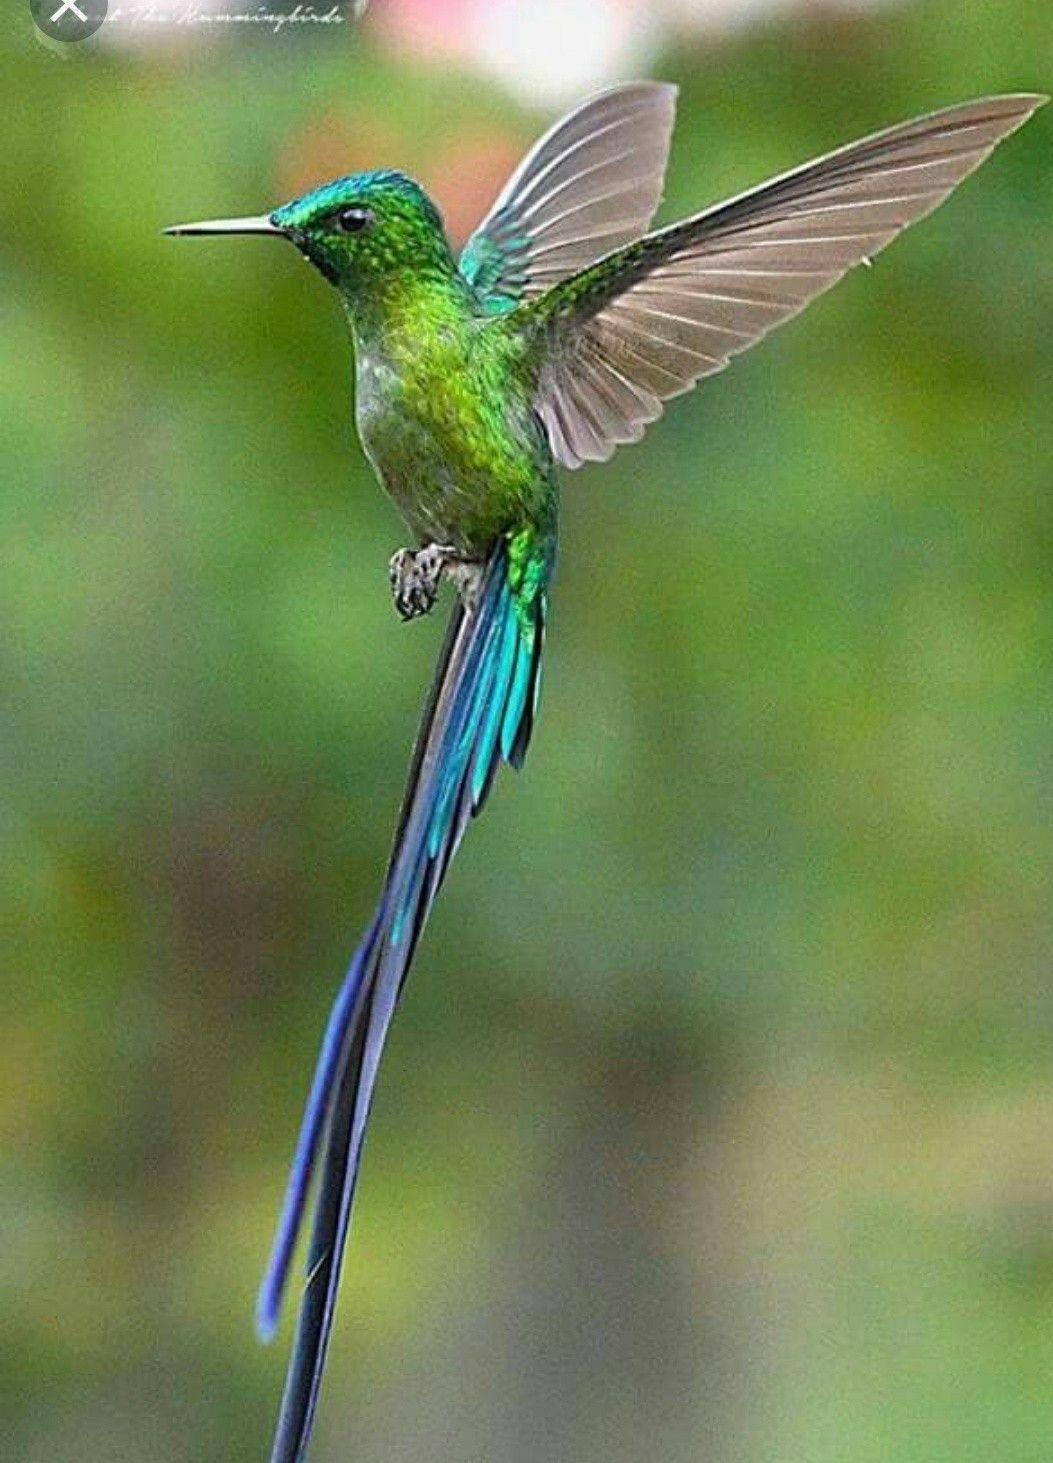 Pin by Pamela Araujo on Hummingbird (With images